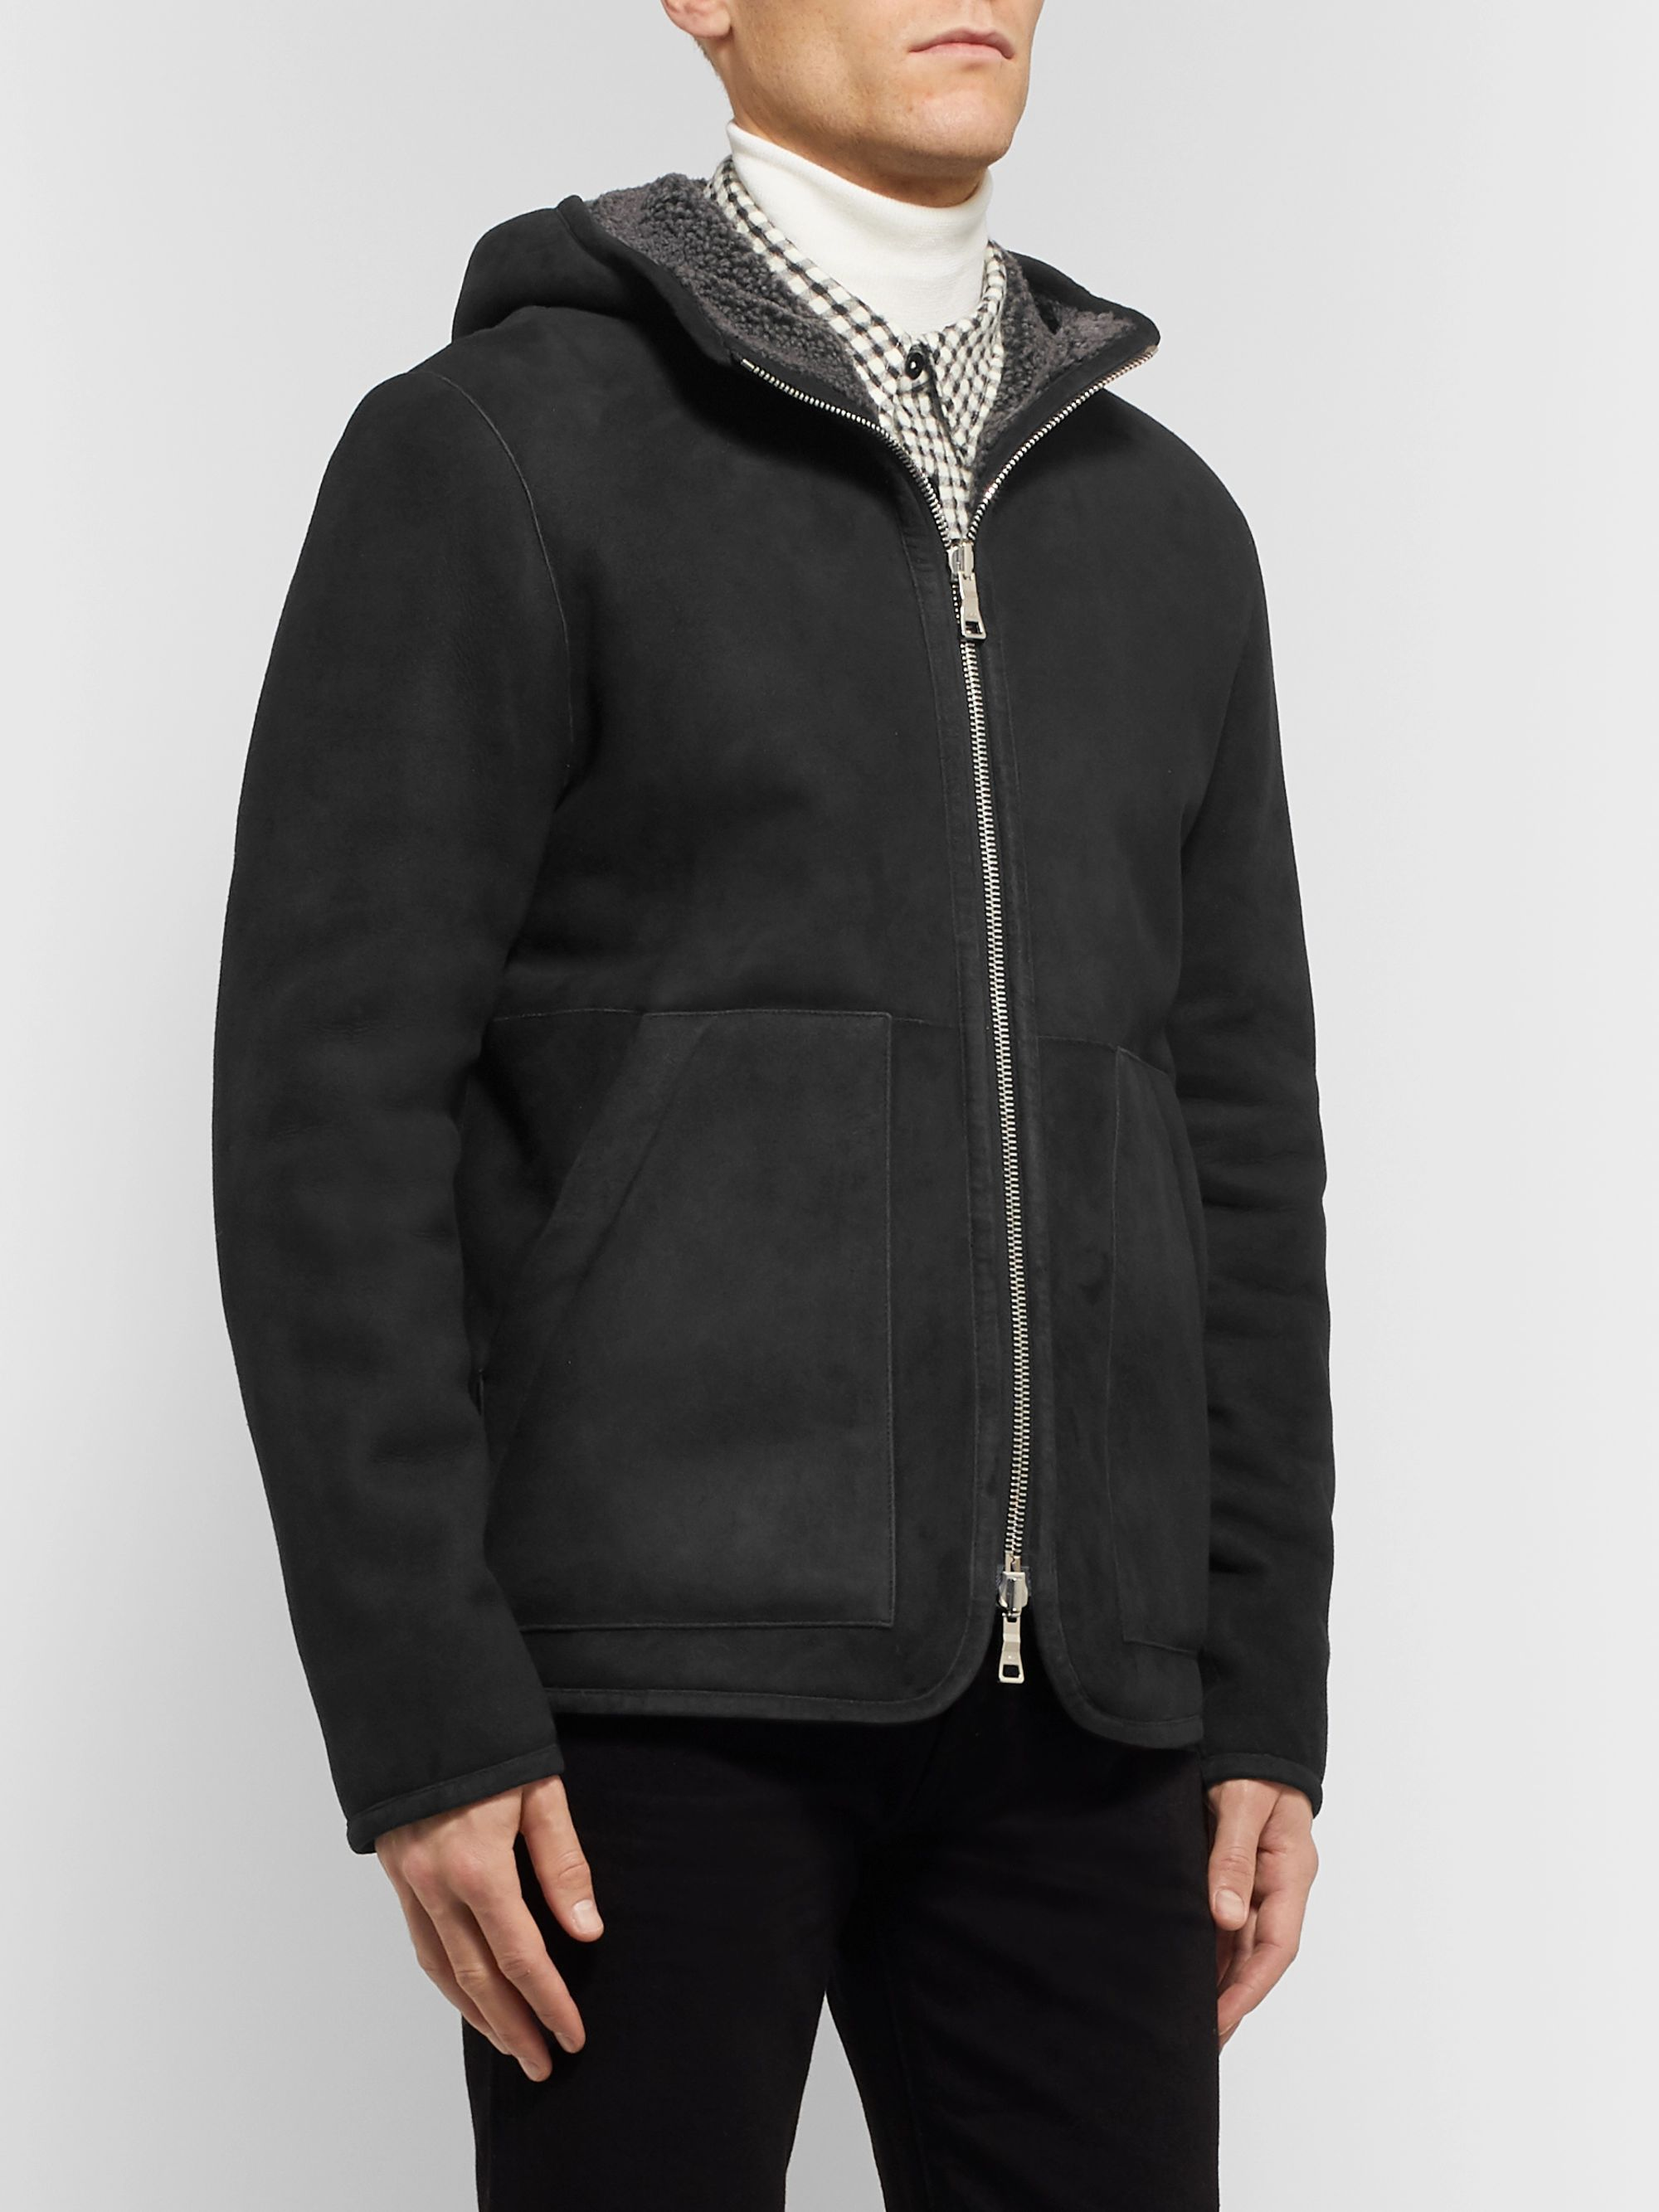 Mr P. Reversible Shearling Hooded Jacket